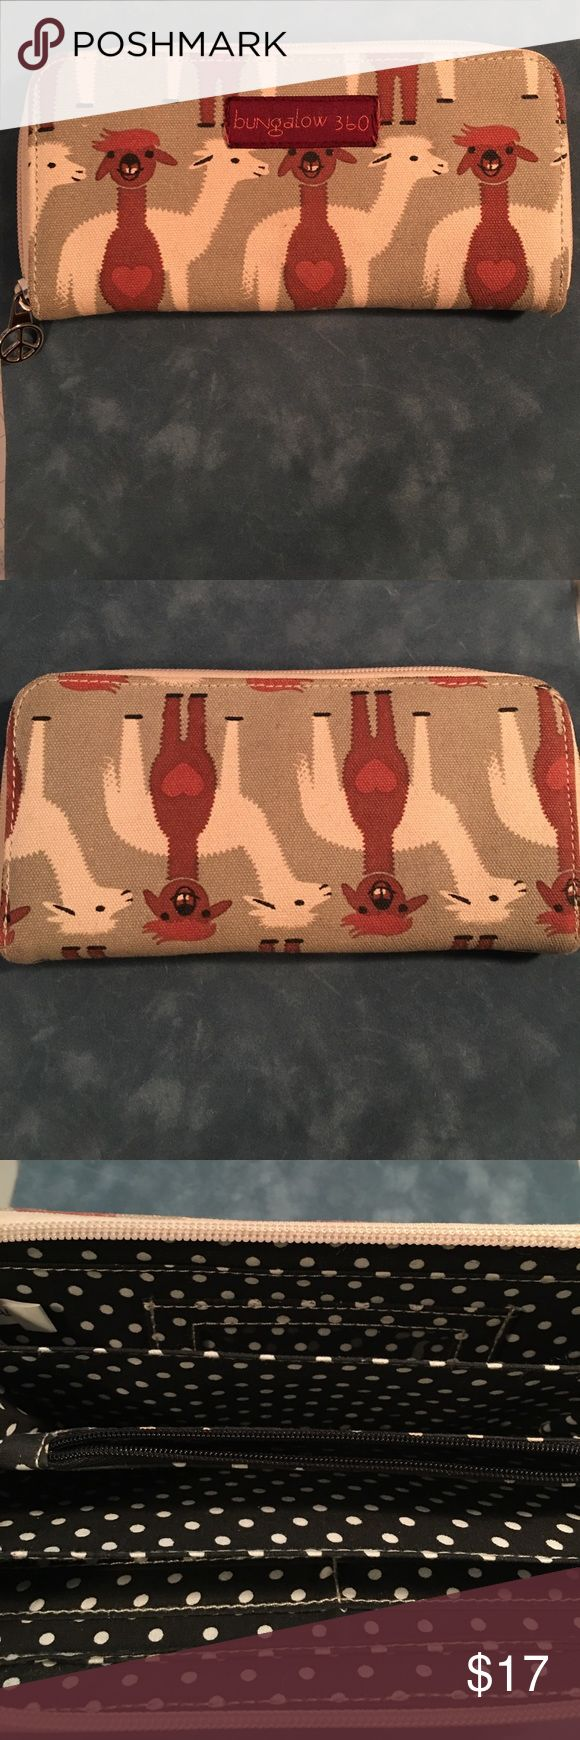 """Adorable llama wallet! Bungalow 360 llama print canvas zip around wallet, lt. olive/cream/brown, 7-3/4""""W x 3-3/4""""H x 1""""D...hardly used---EUC! Bungalow 360 Bags Wallets"""